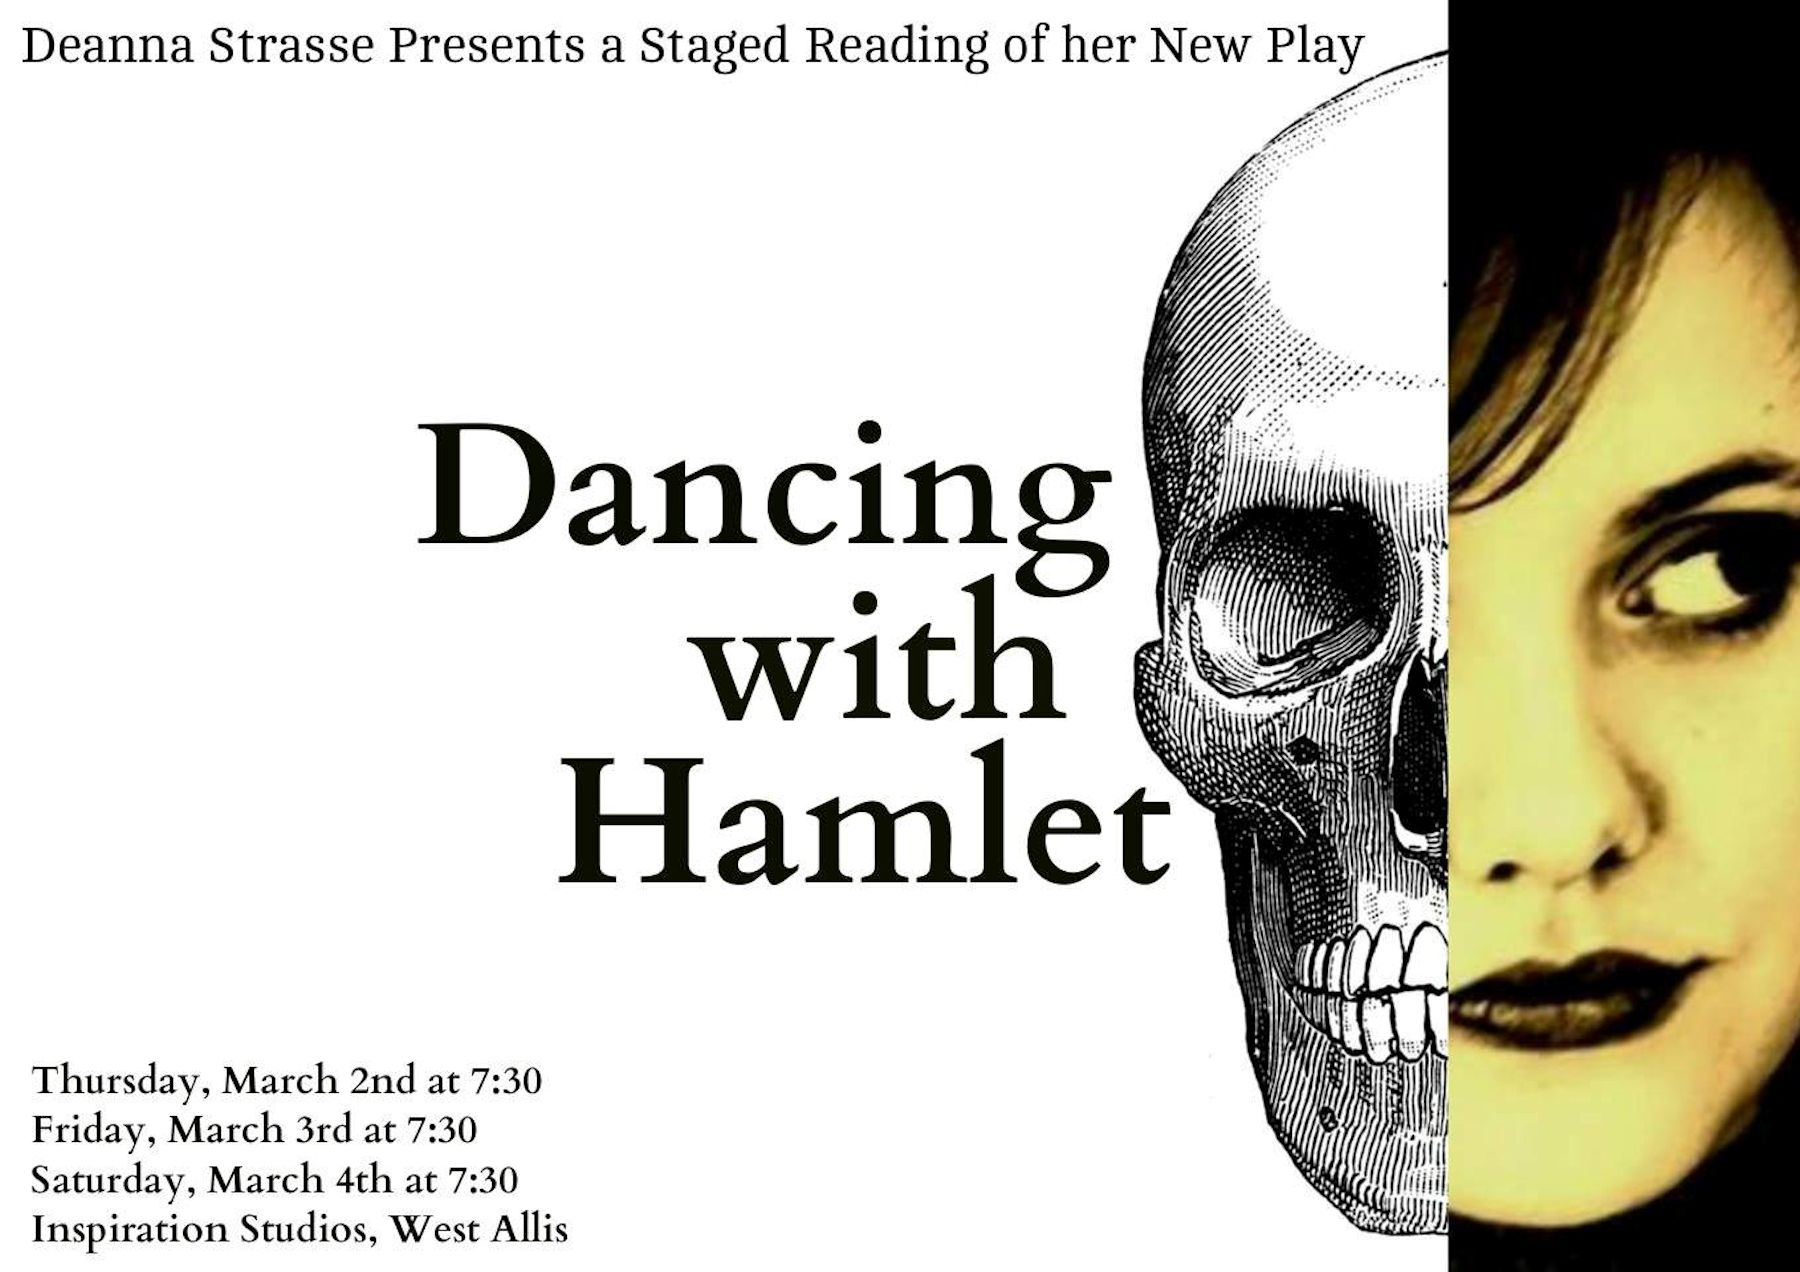 Off-Book Players Present DANCING WITH HAMLET by Deanna Strasse